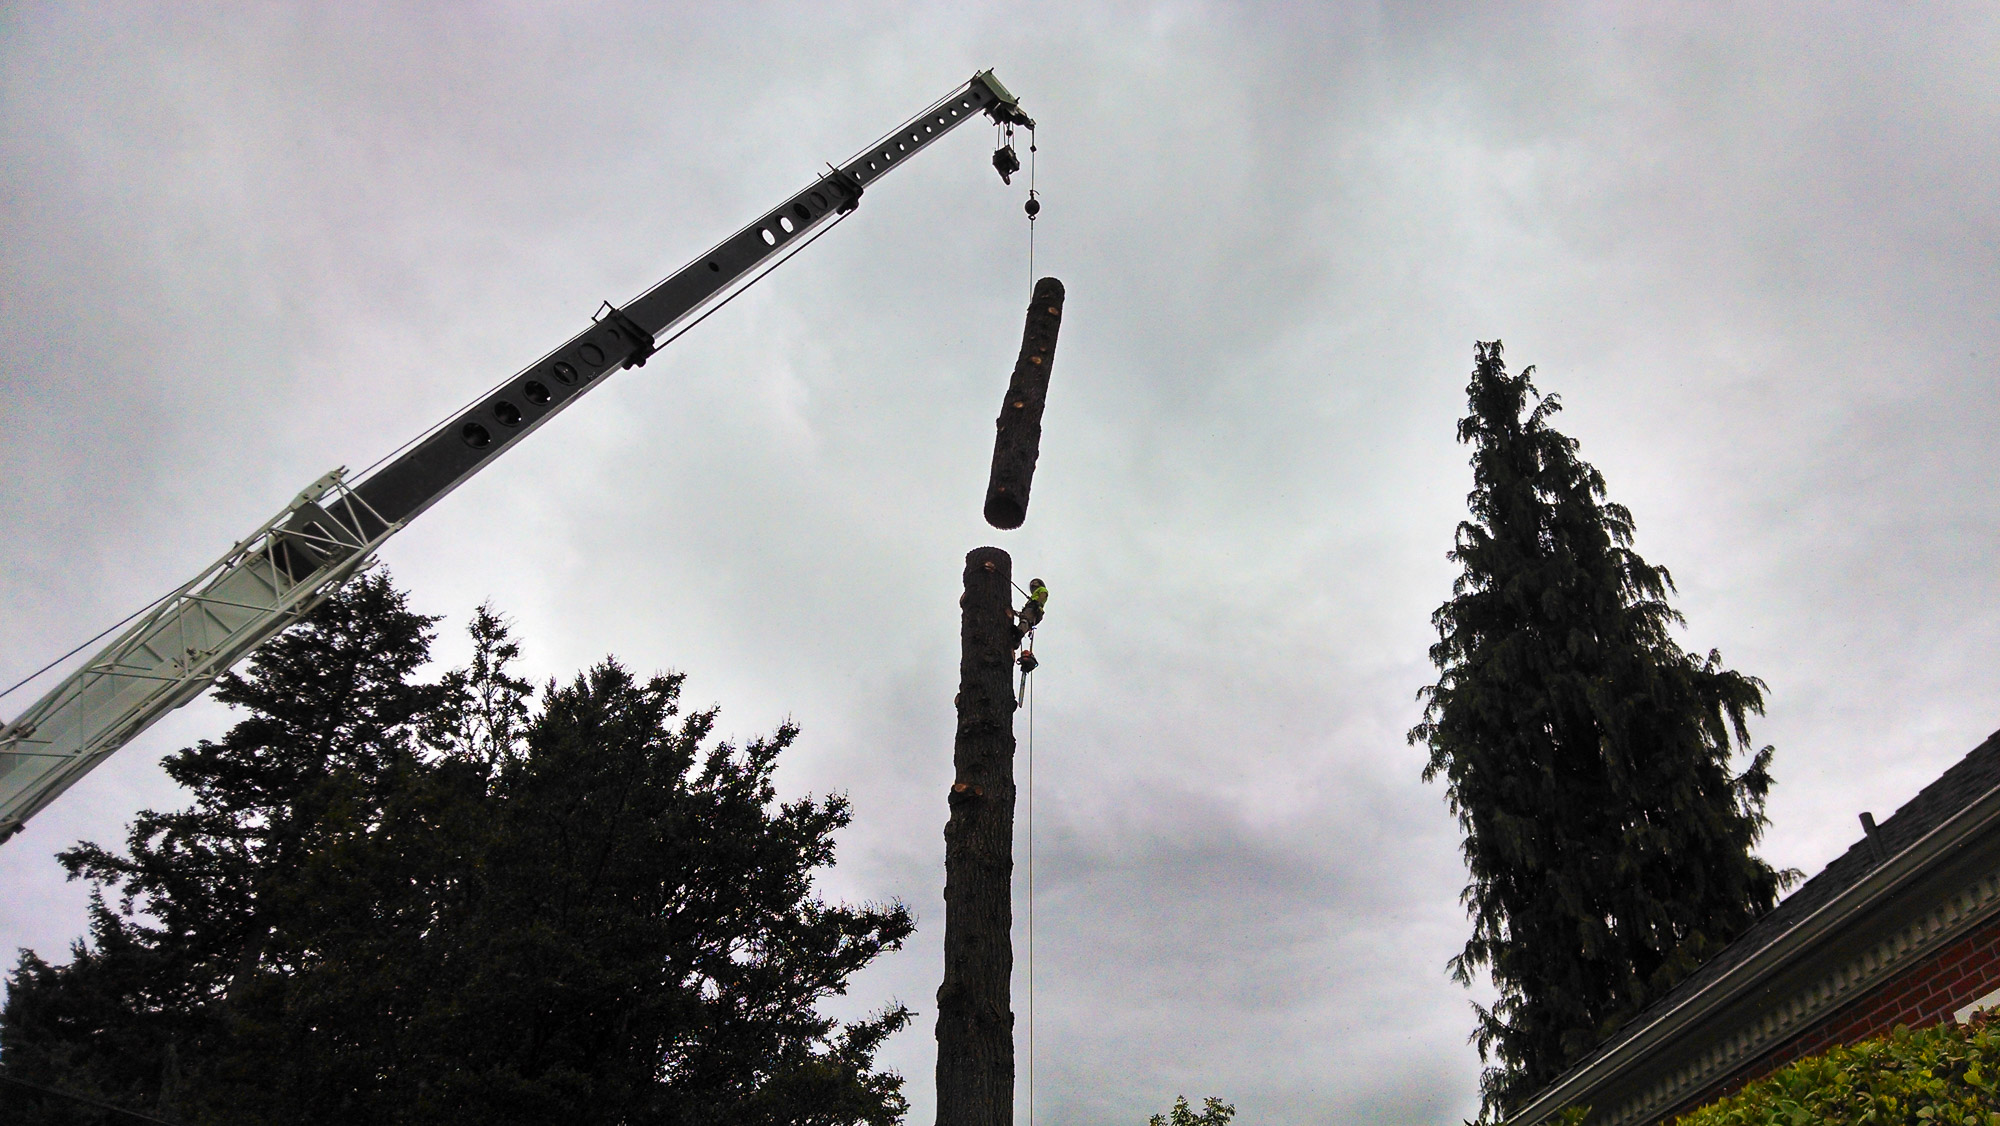 tree-service-removal-pruning-salem-oregon-302